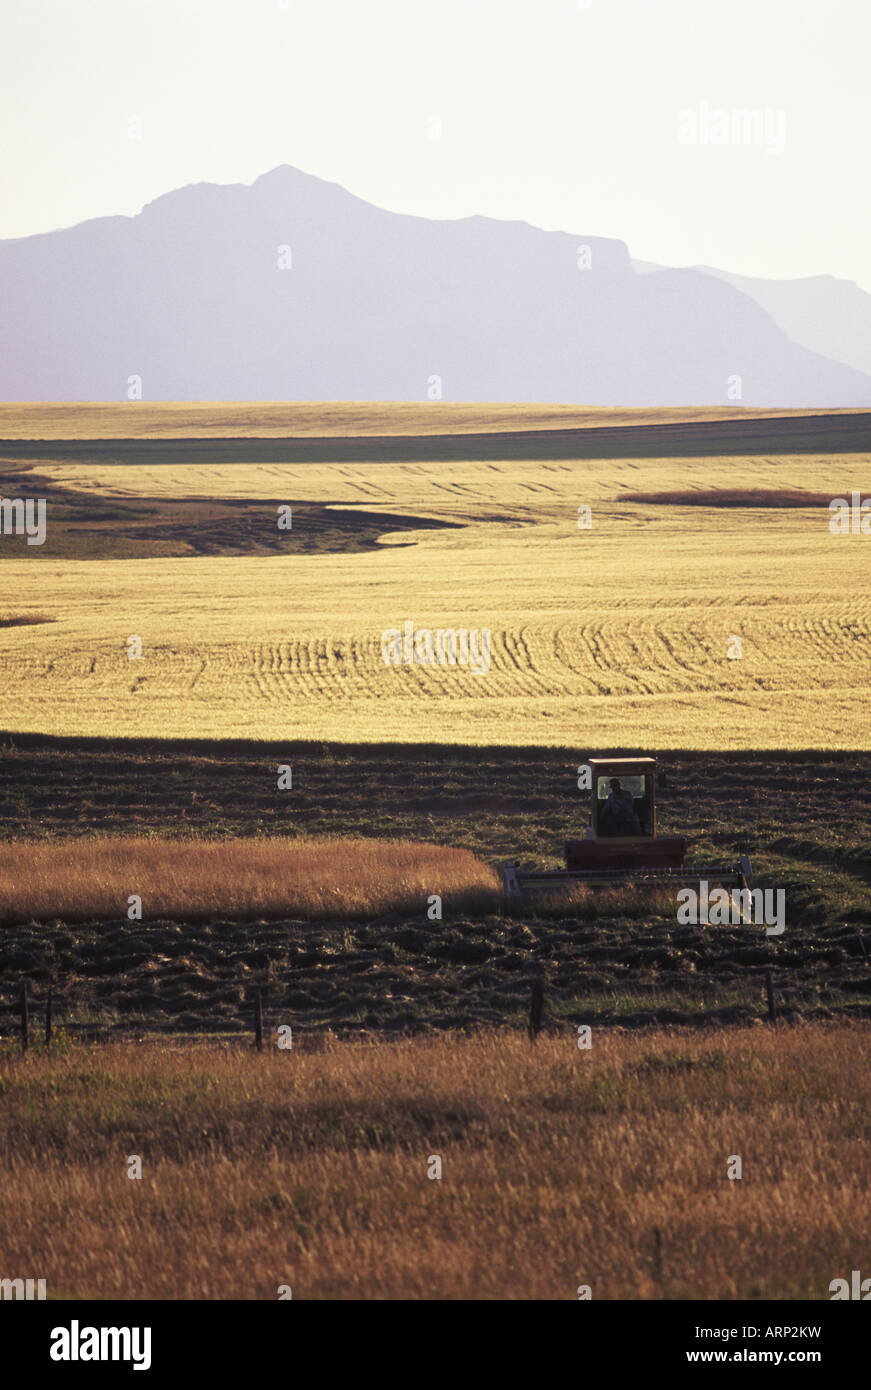 USA, Montana - ranchland and foothills of Rocky Mountains - Stock Image